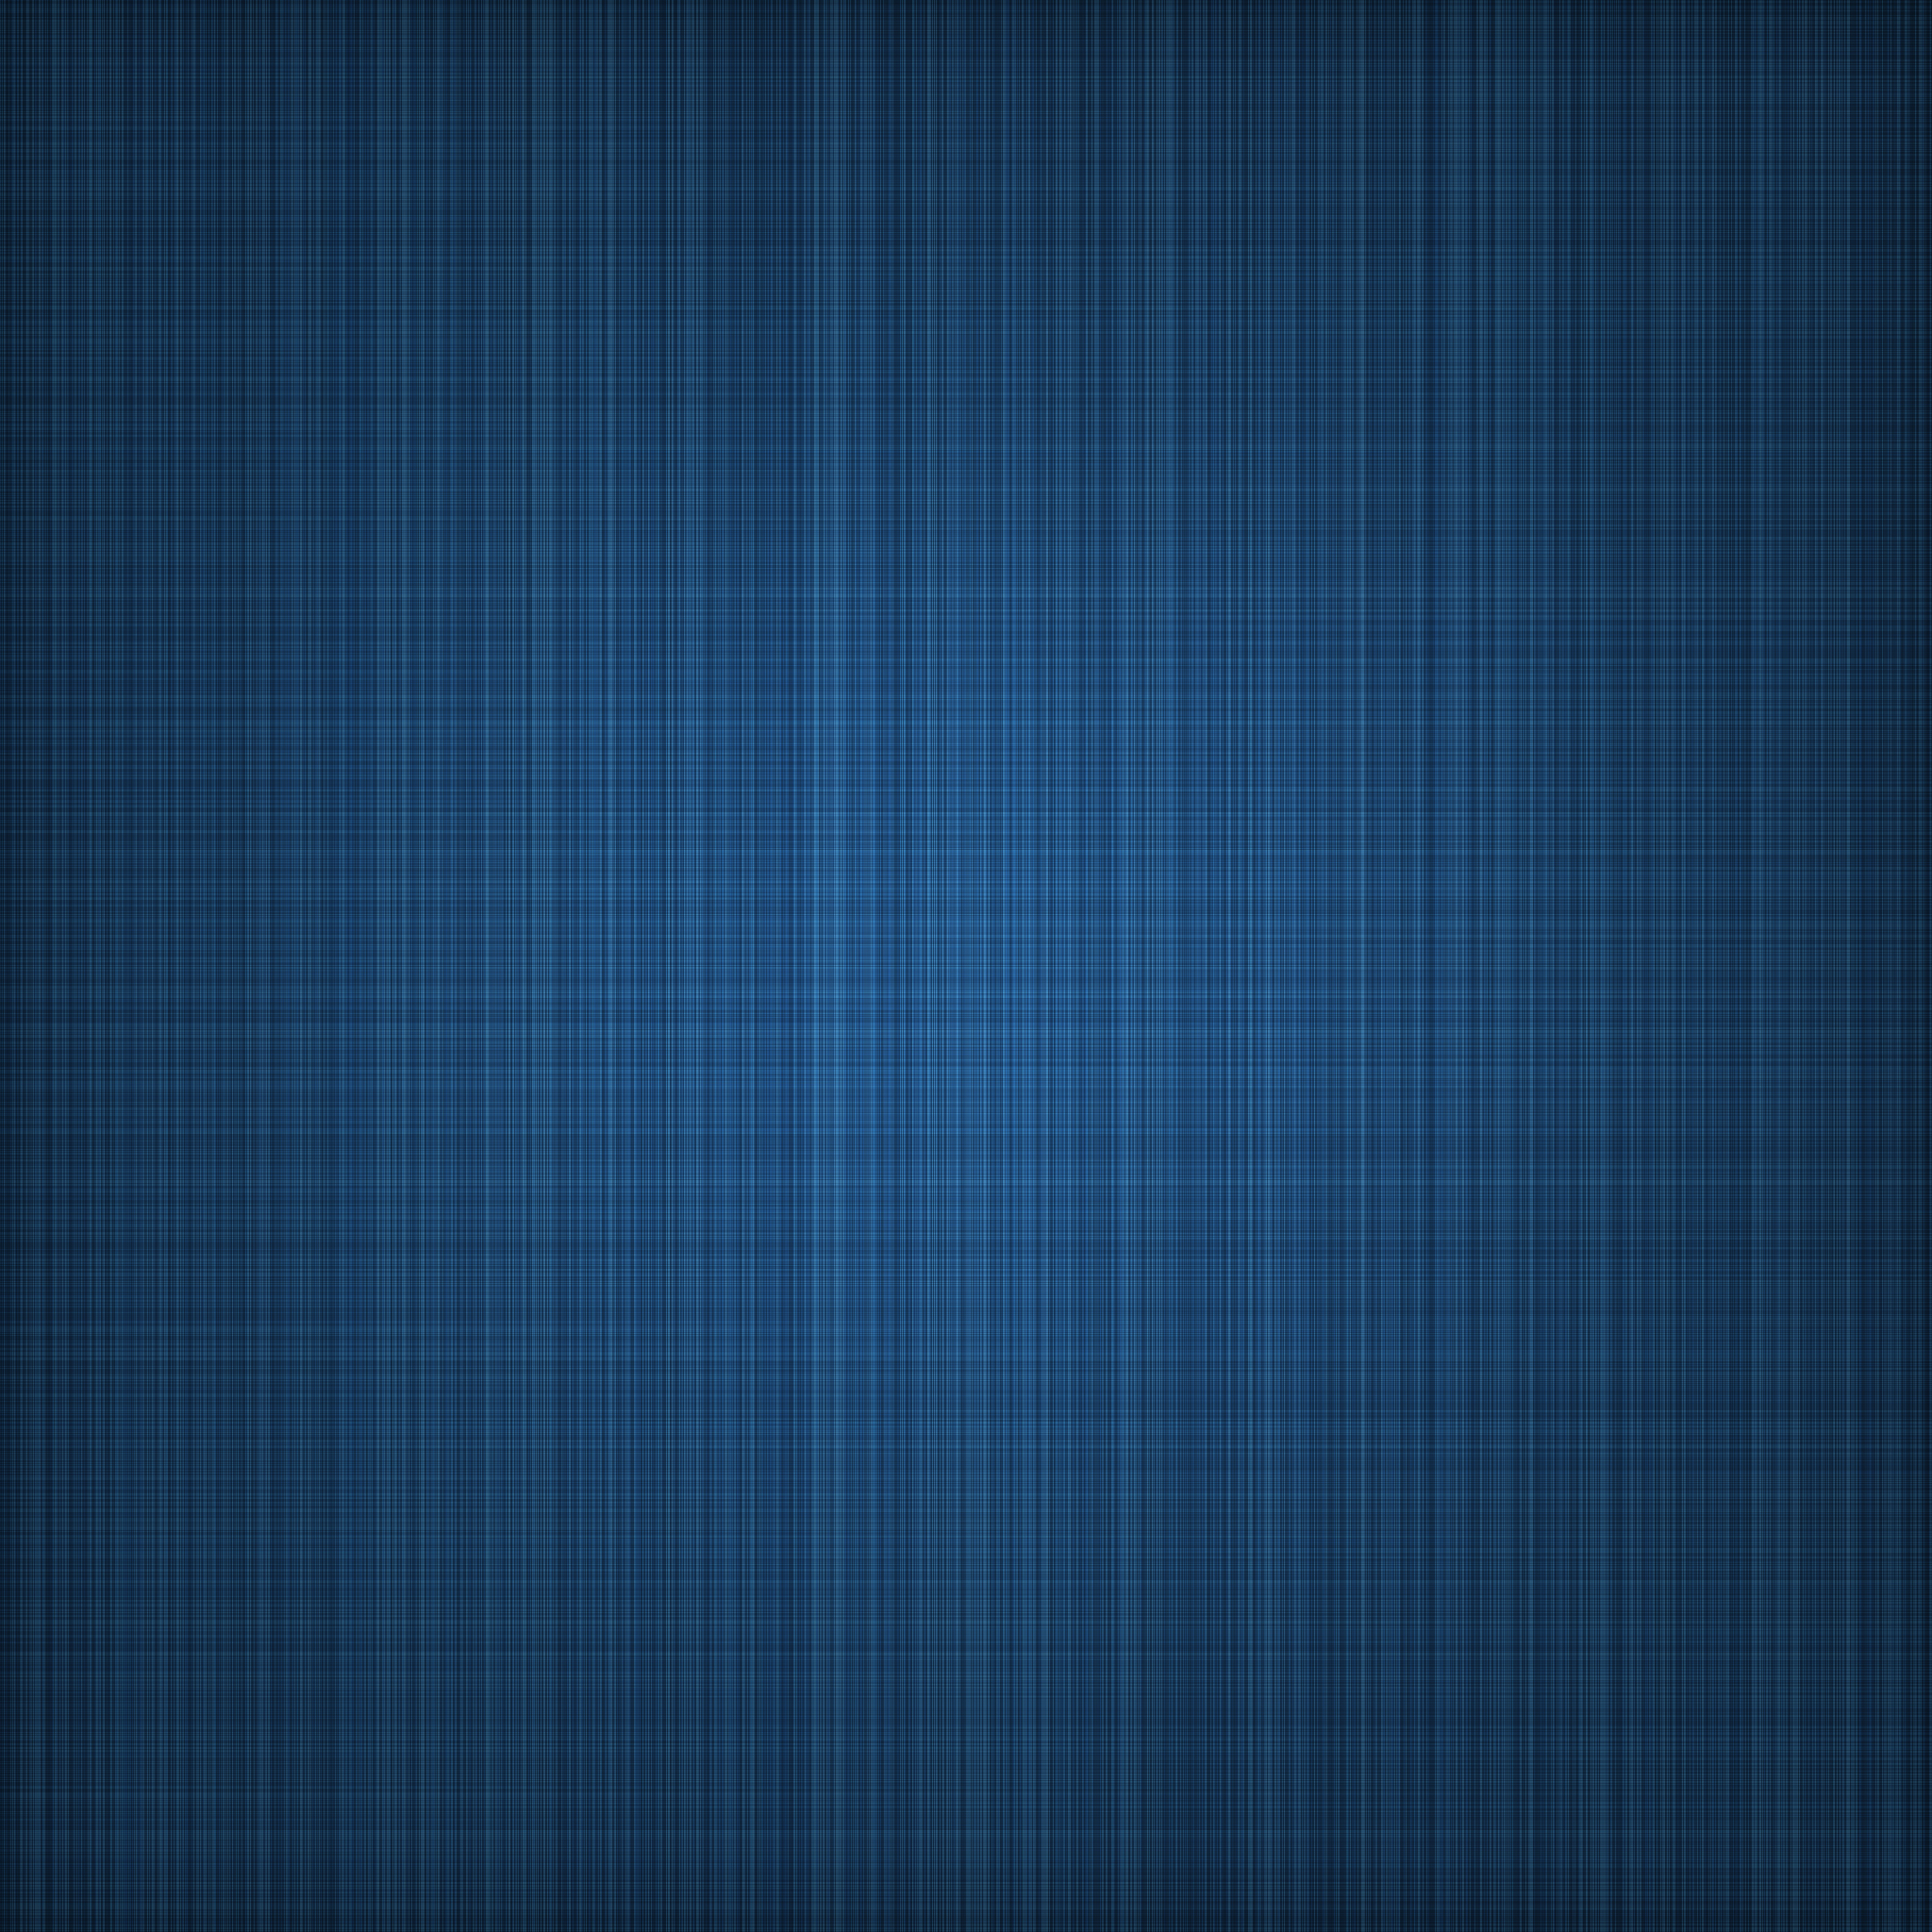 50 iPad Air Wallpapers in High Definition For Download 2048x2048